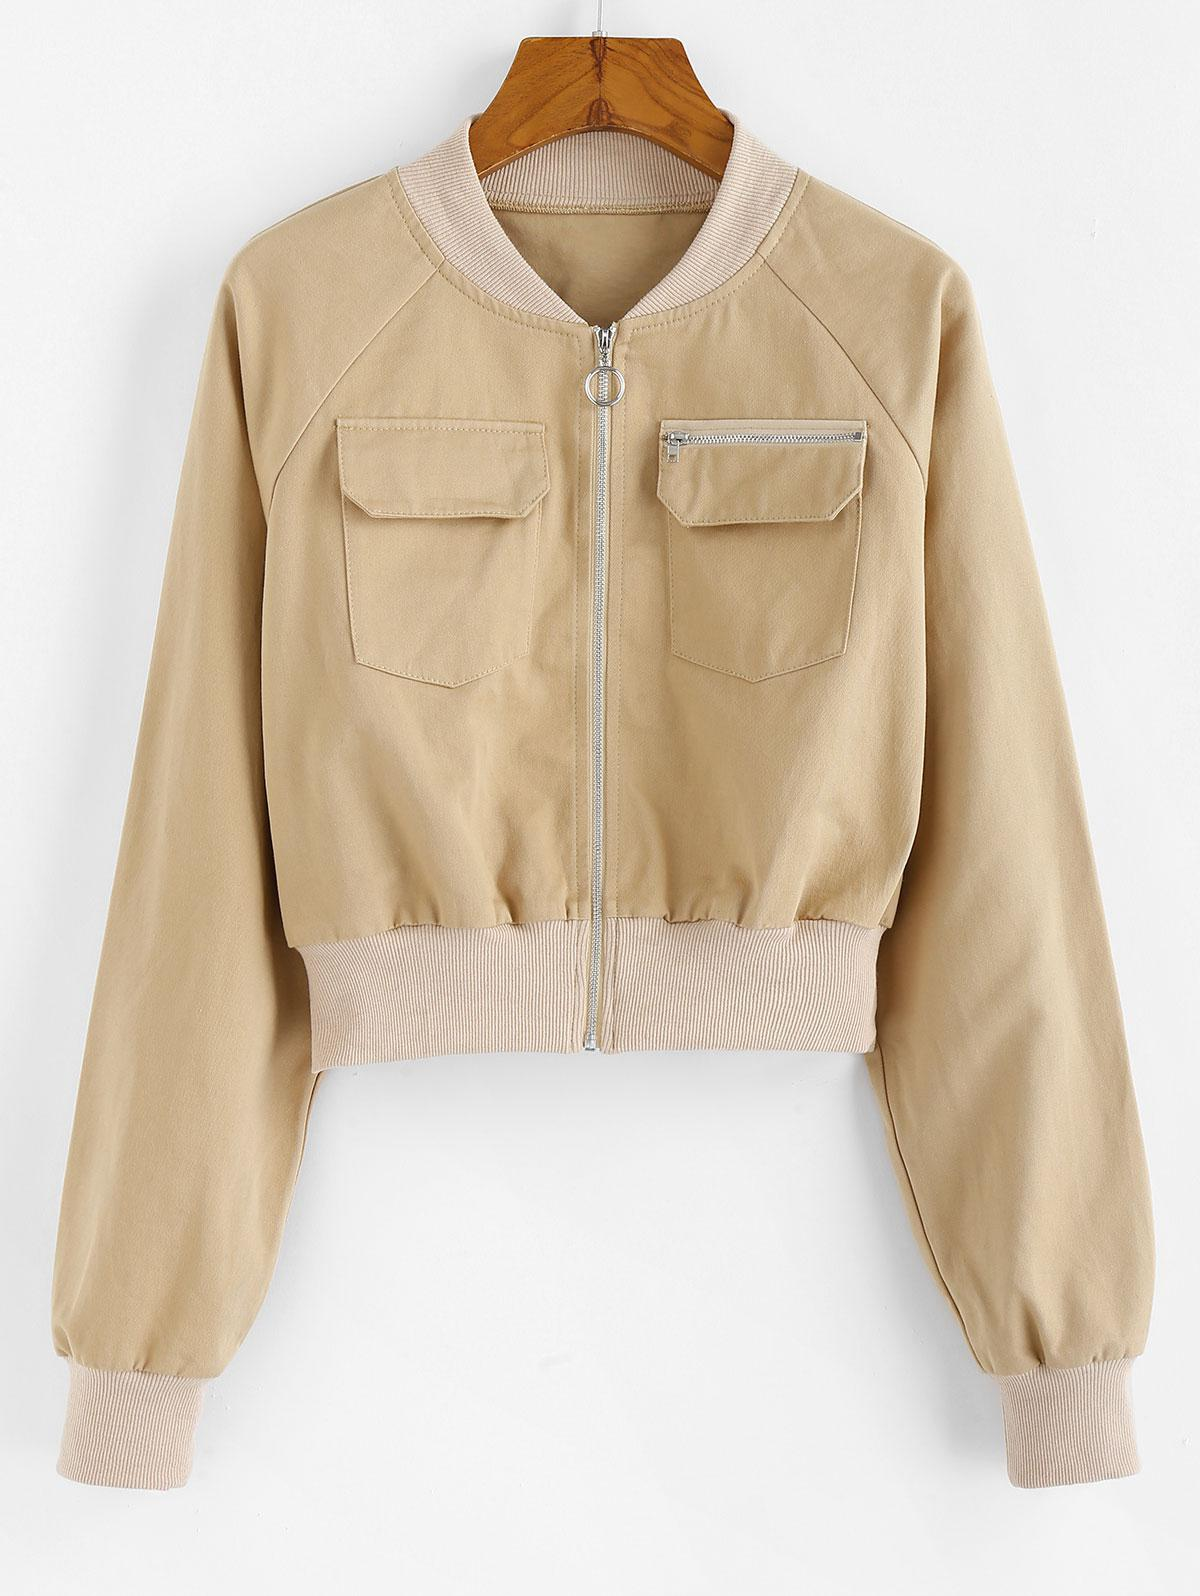 ZAFUL Front Pockets Cropped Jacket